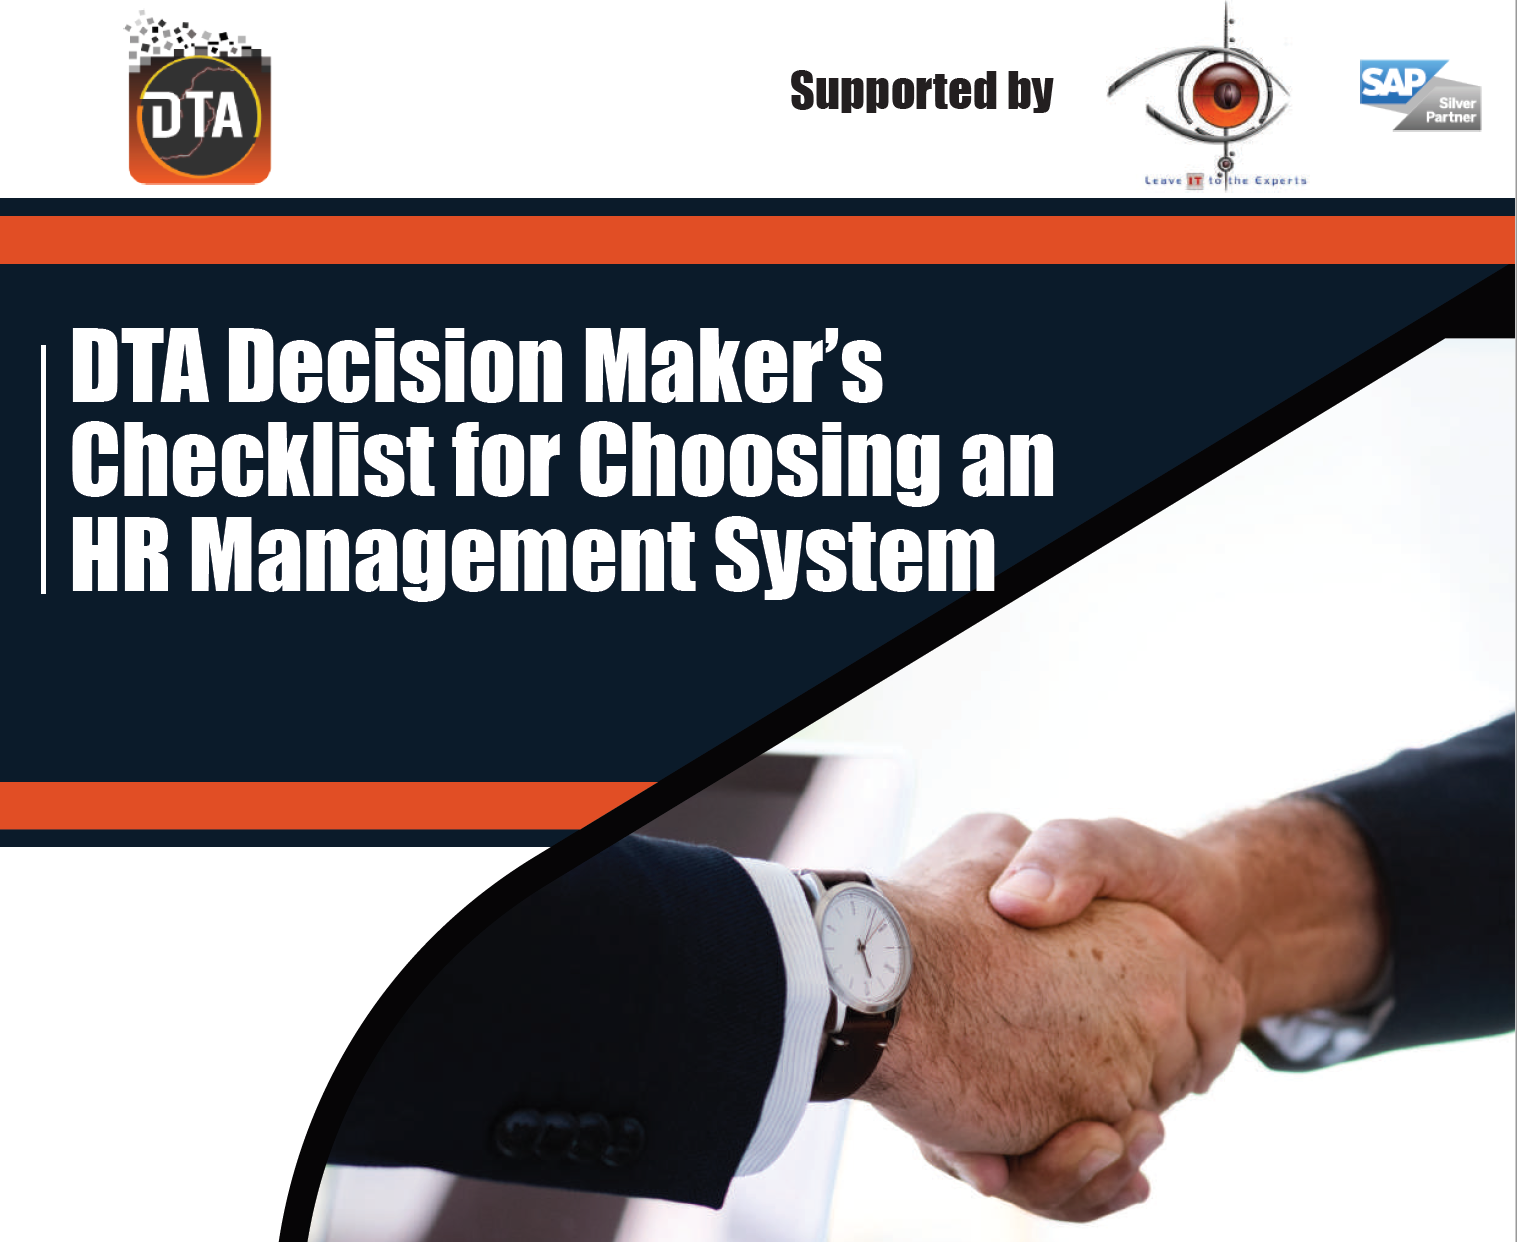 DTA Decision Maker's Checklist for Choosing an HR Management System supported by Osiris.pdf